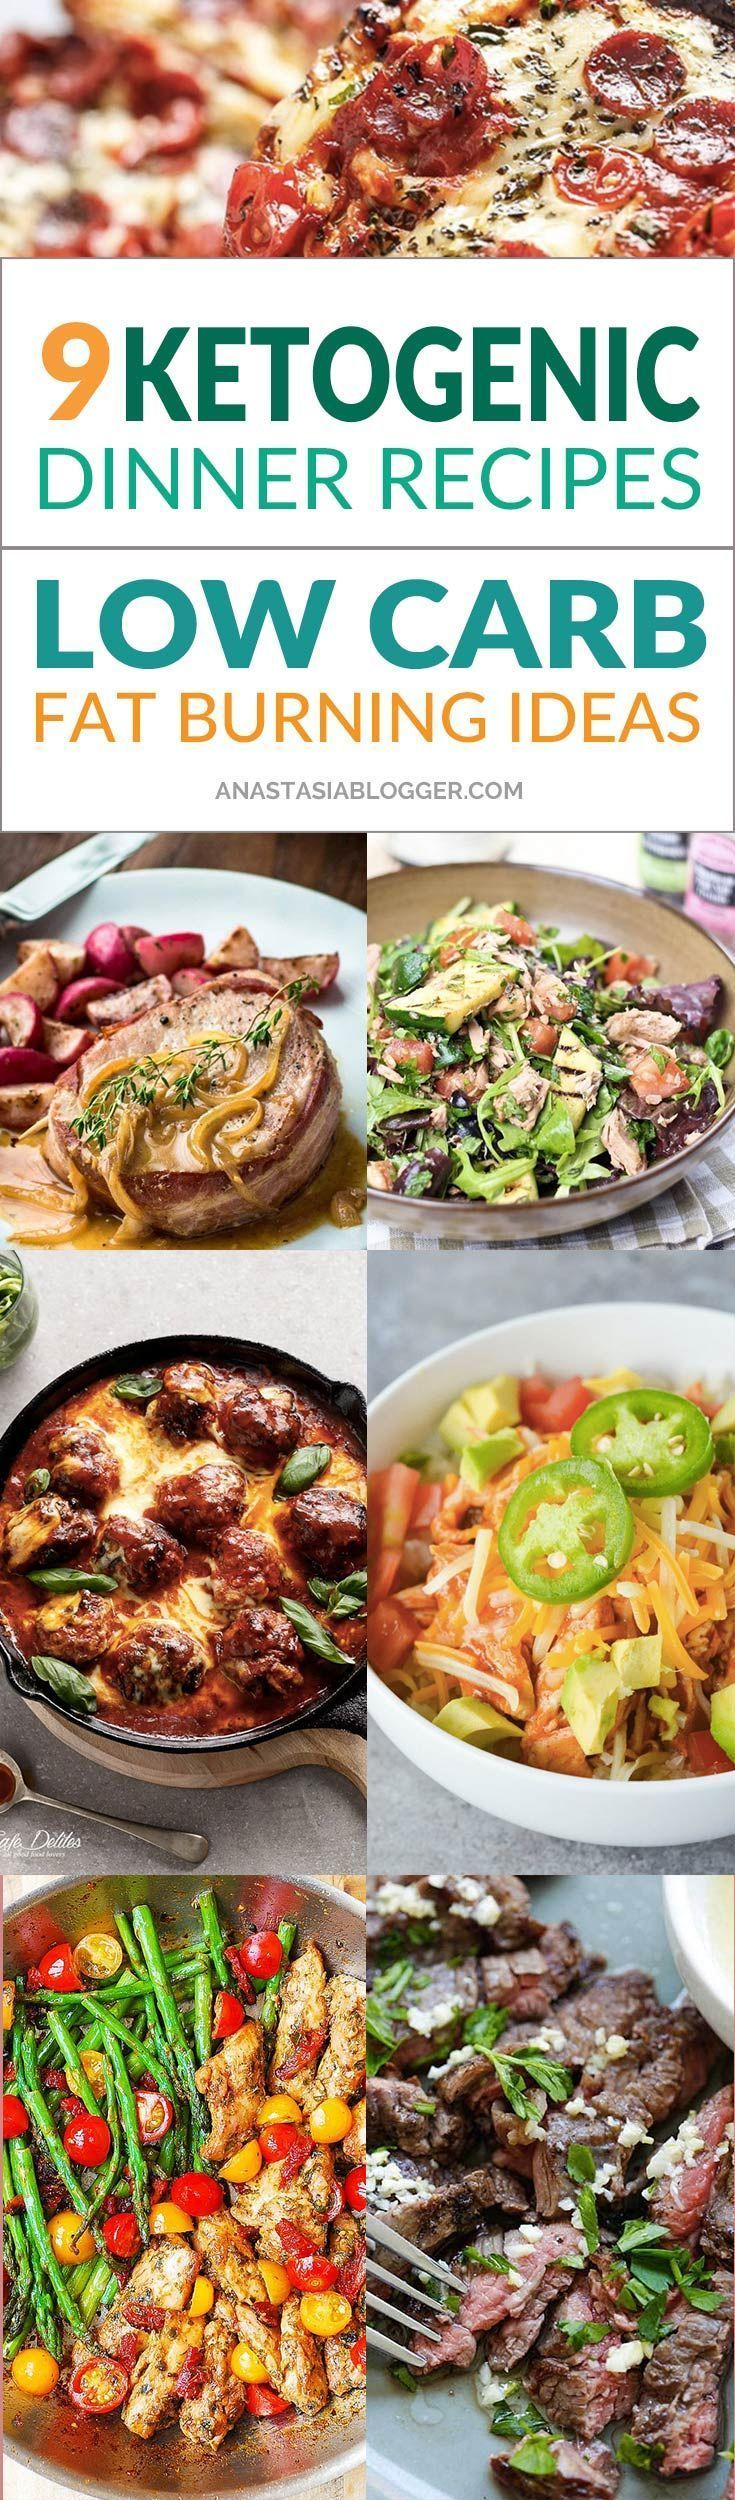 Try these 9 Easy Keto Recipes for a Healthy Dinner for your Ketogenic diet. Improve your keto mealplan with these easy low-carb Keto ideas that will help you burn fat and lose weight faster! Ketogenic fat bombs will help in your winter diet when you need #lowfatdiet